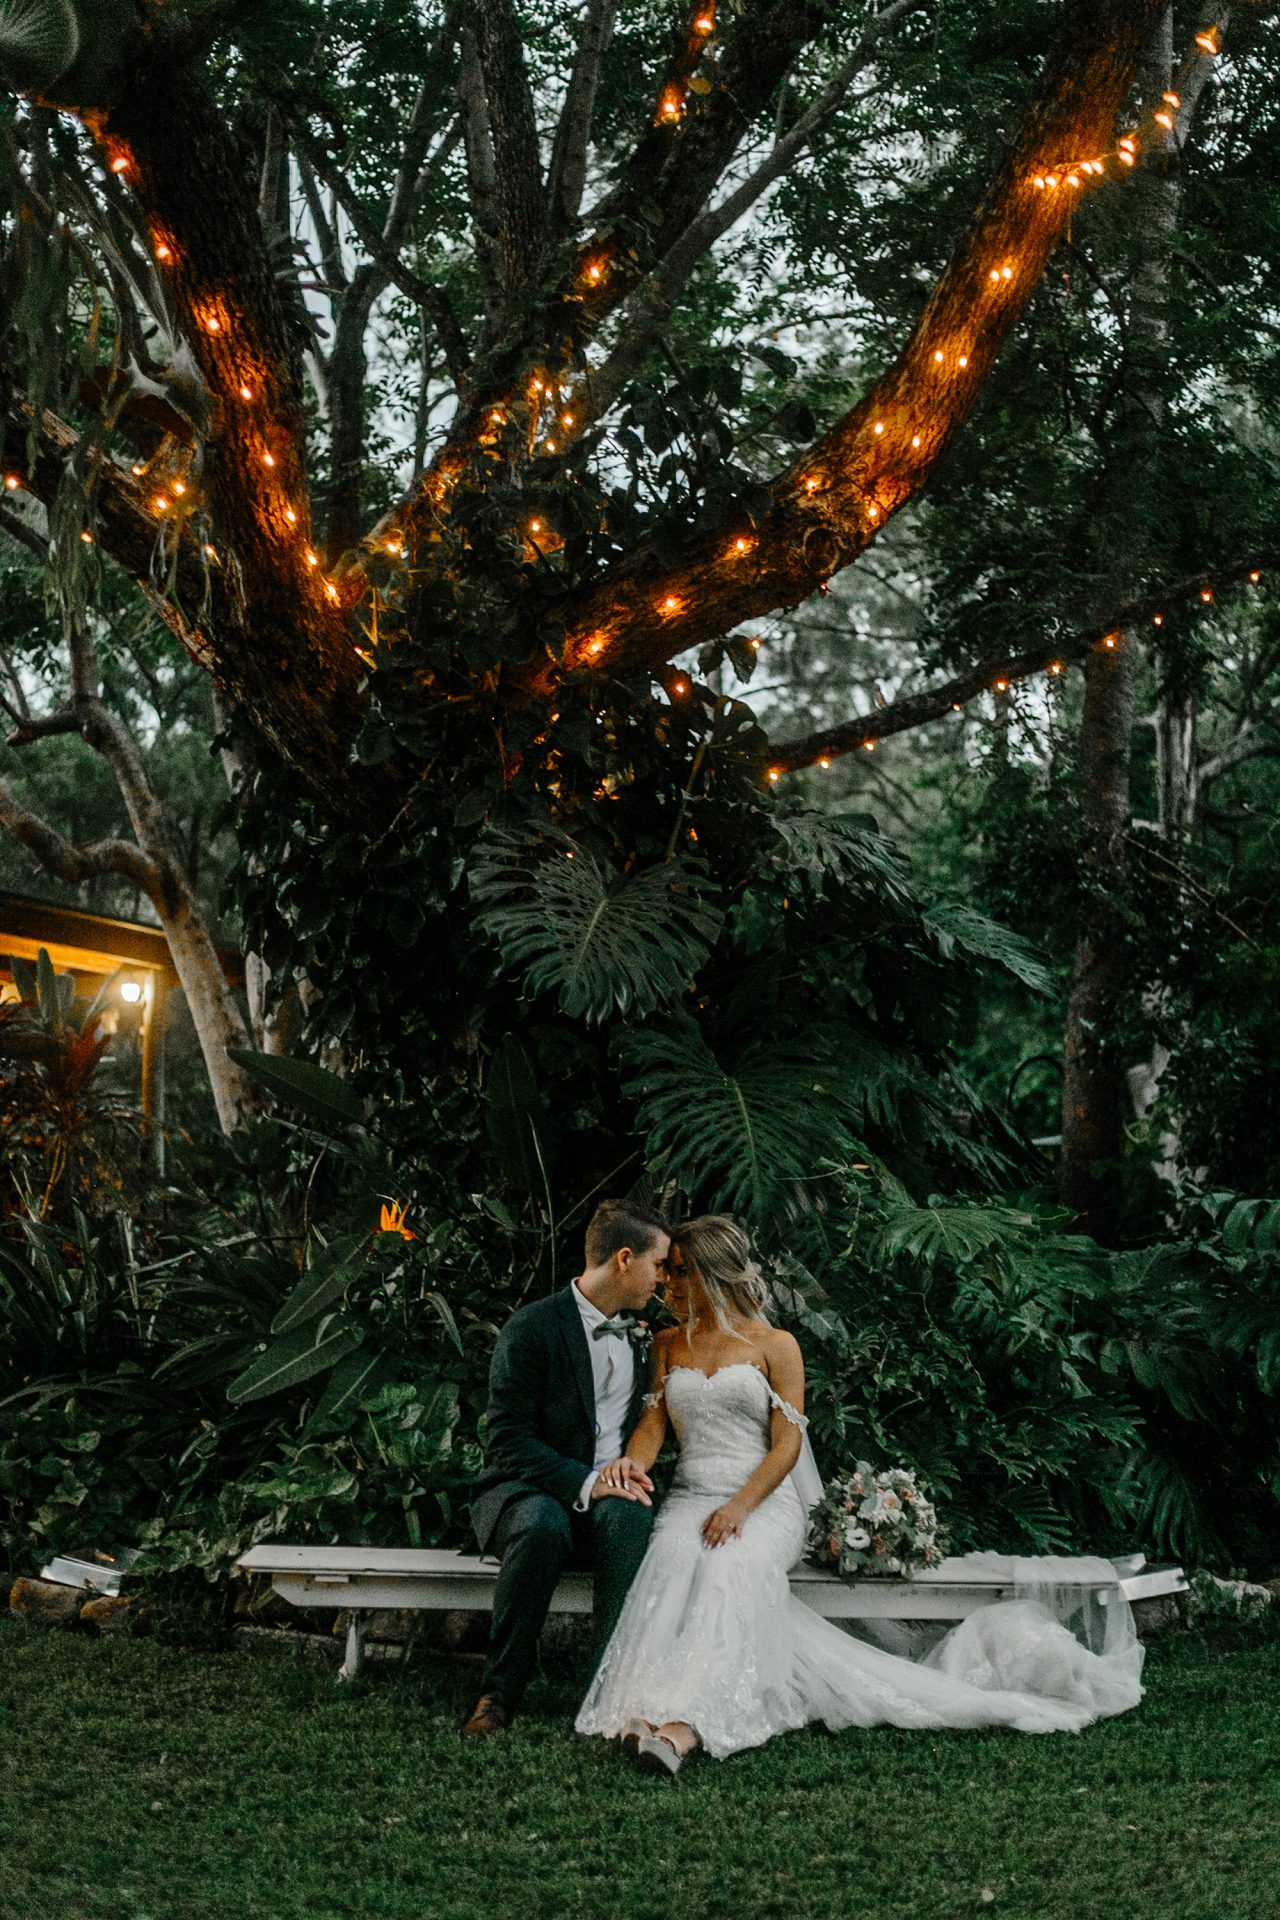 Kavanna_Jason_Romantic-Rustic-Wedding_Love-Tales_042-1280x1920